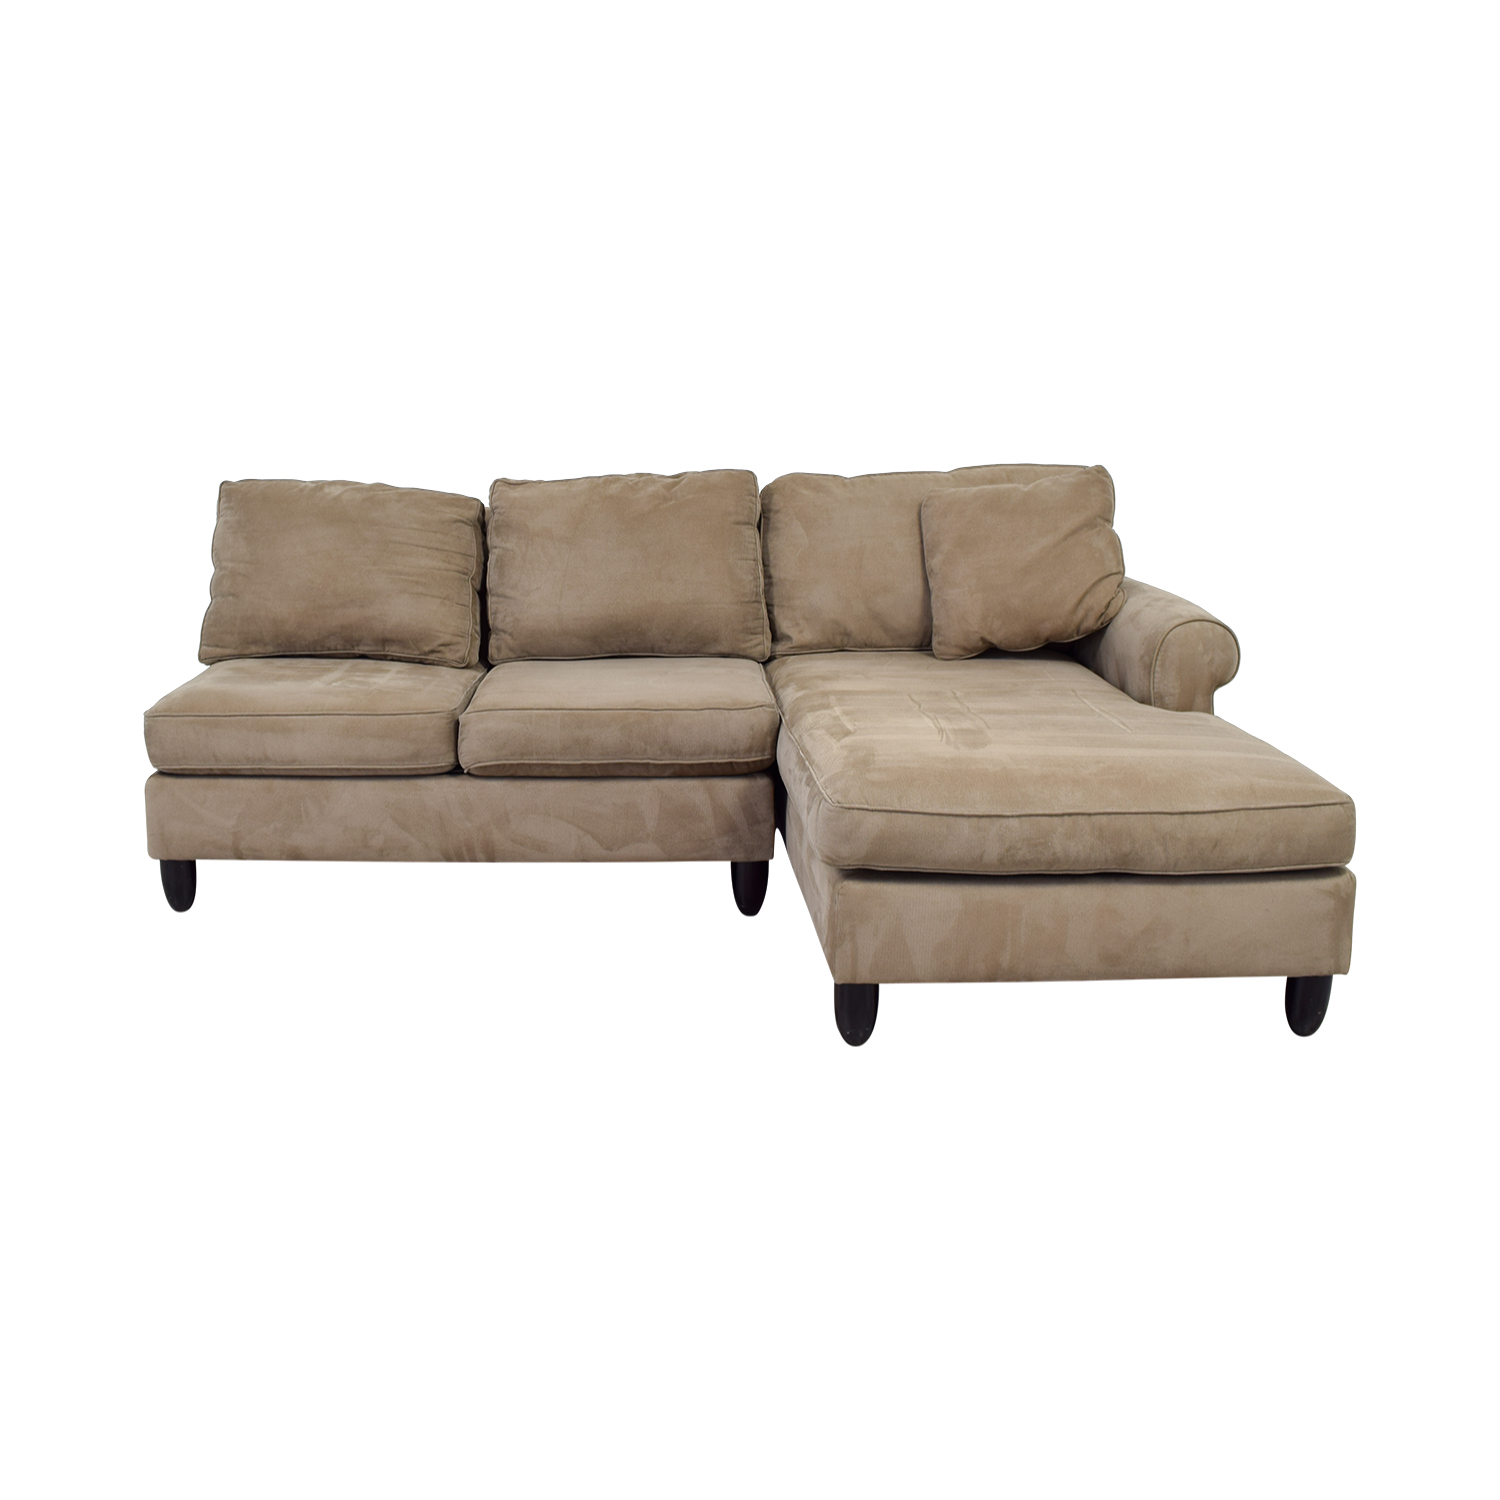 Haverty's Haverty's Tan Chaise Sectional discount